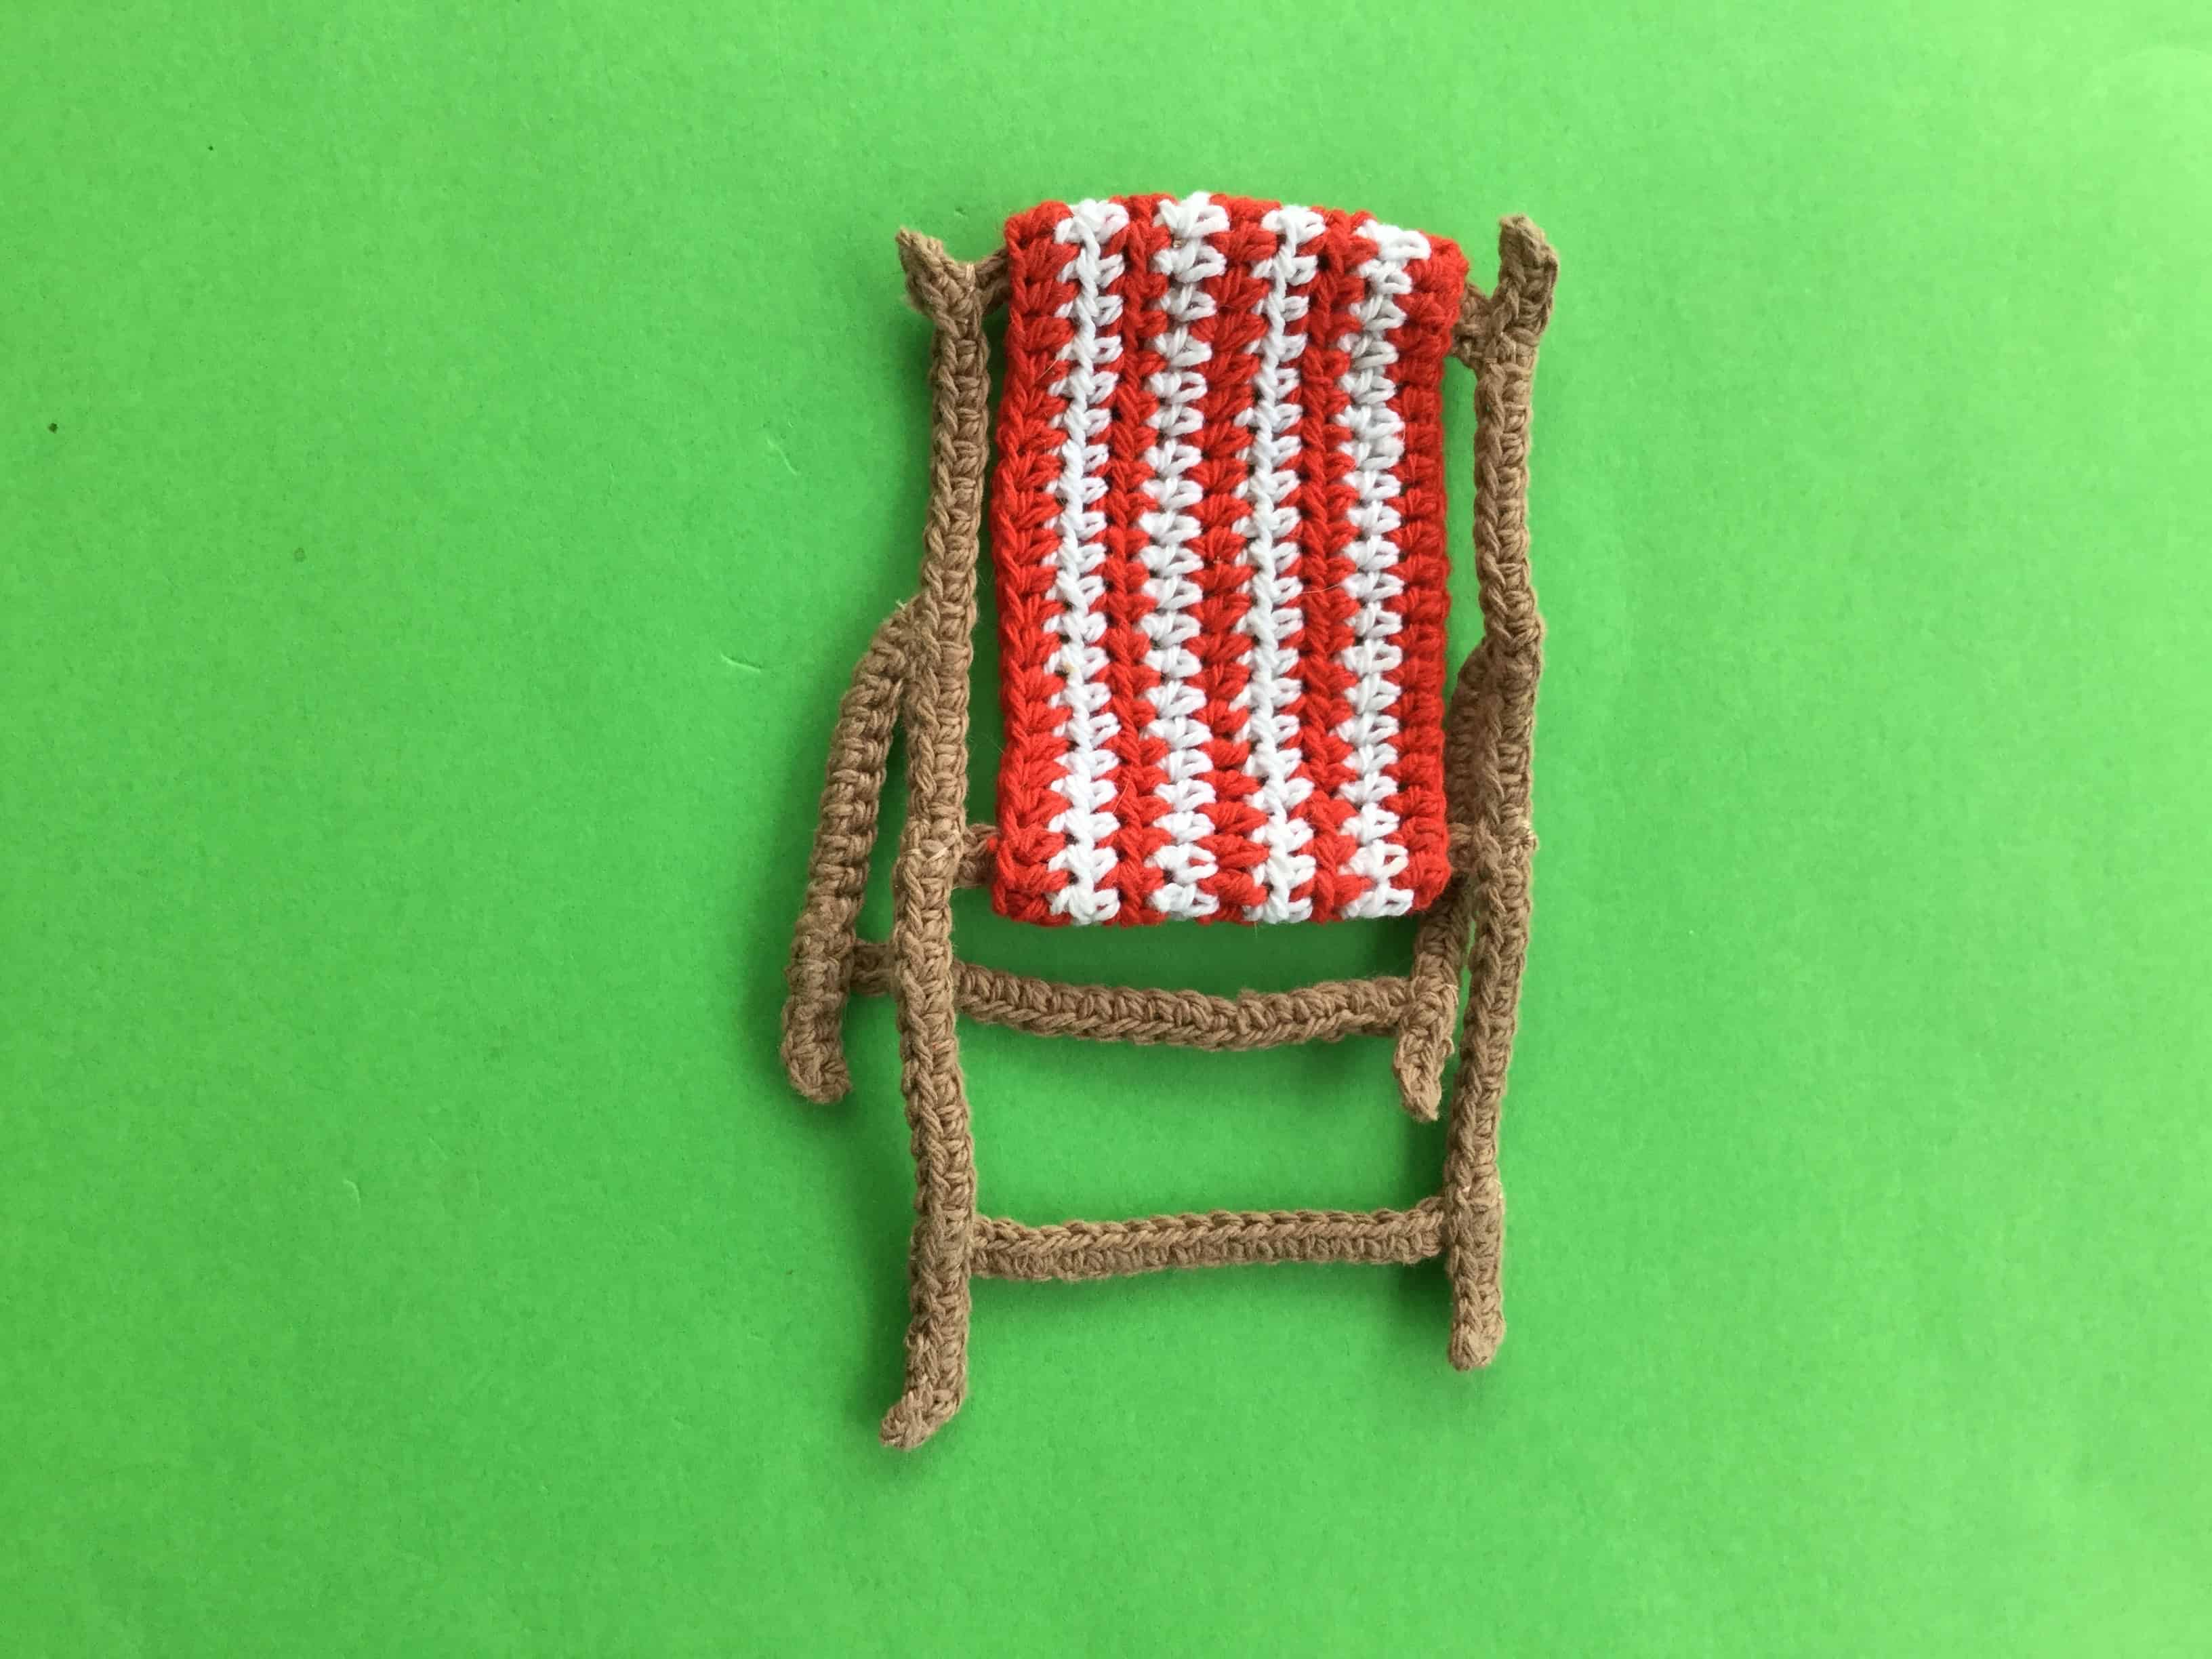 Finished crochet beach chair landscape